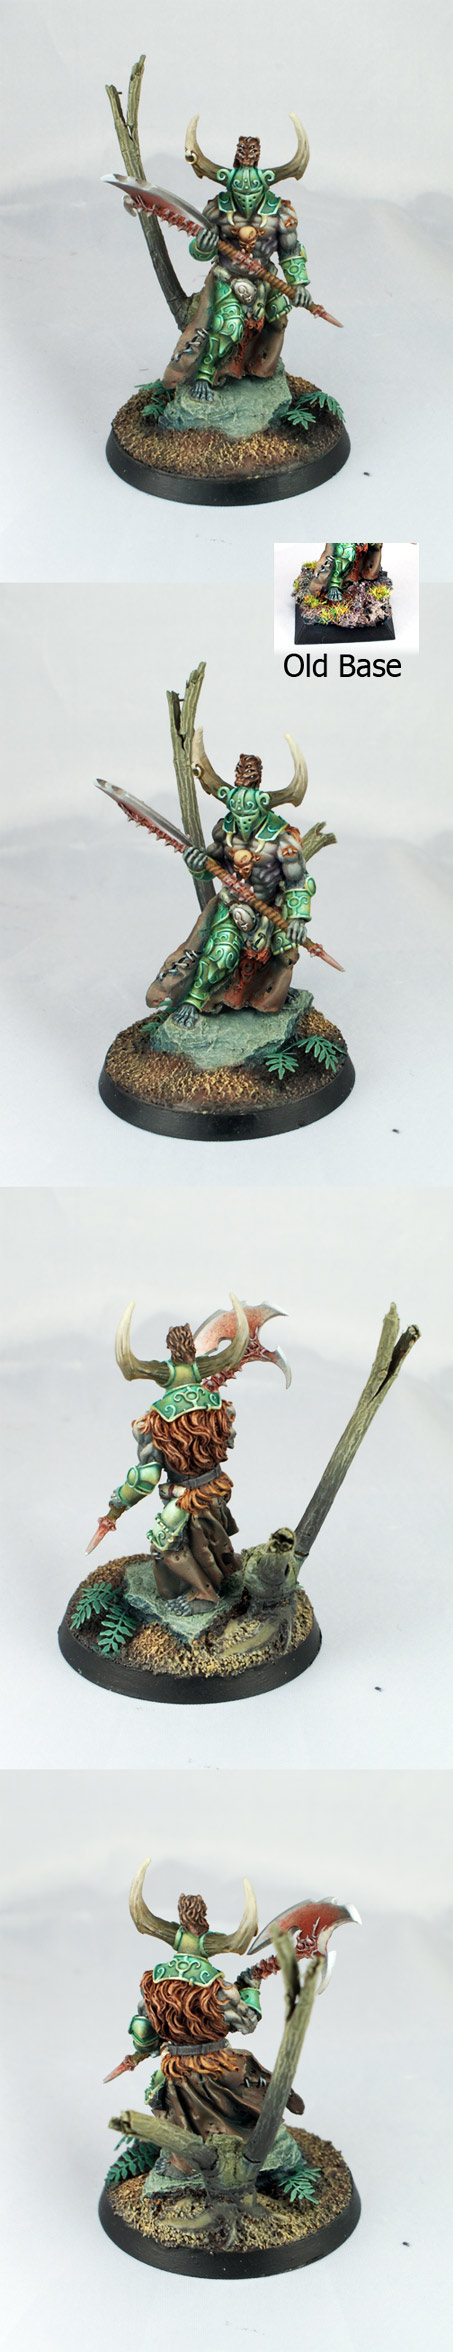 Wandyr the Bloodthirsty